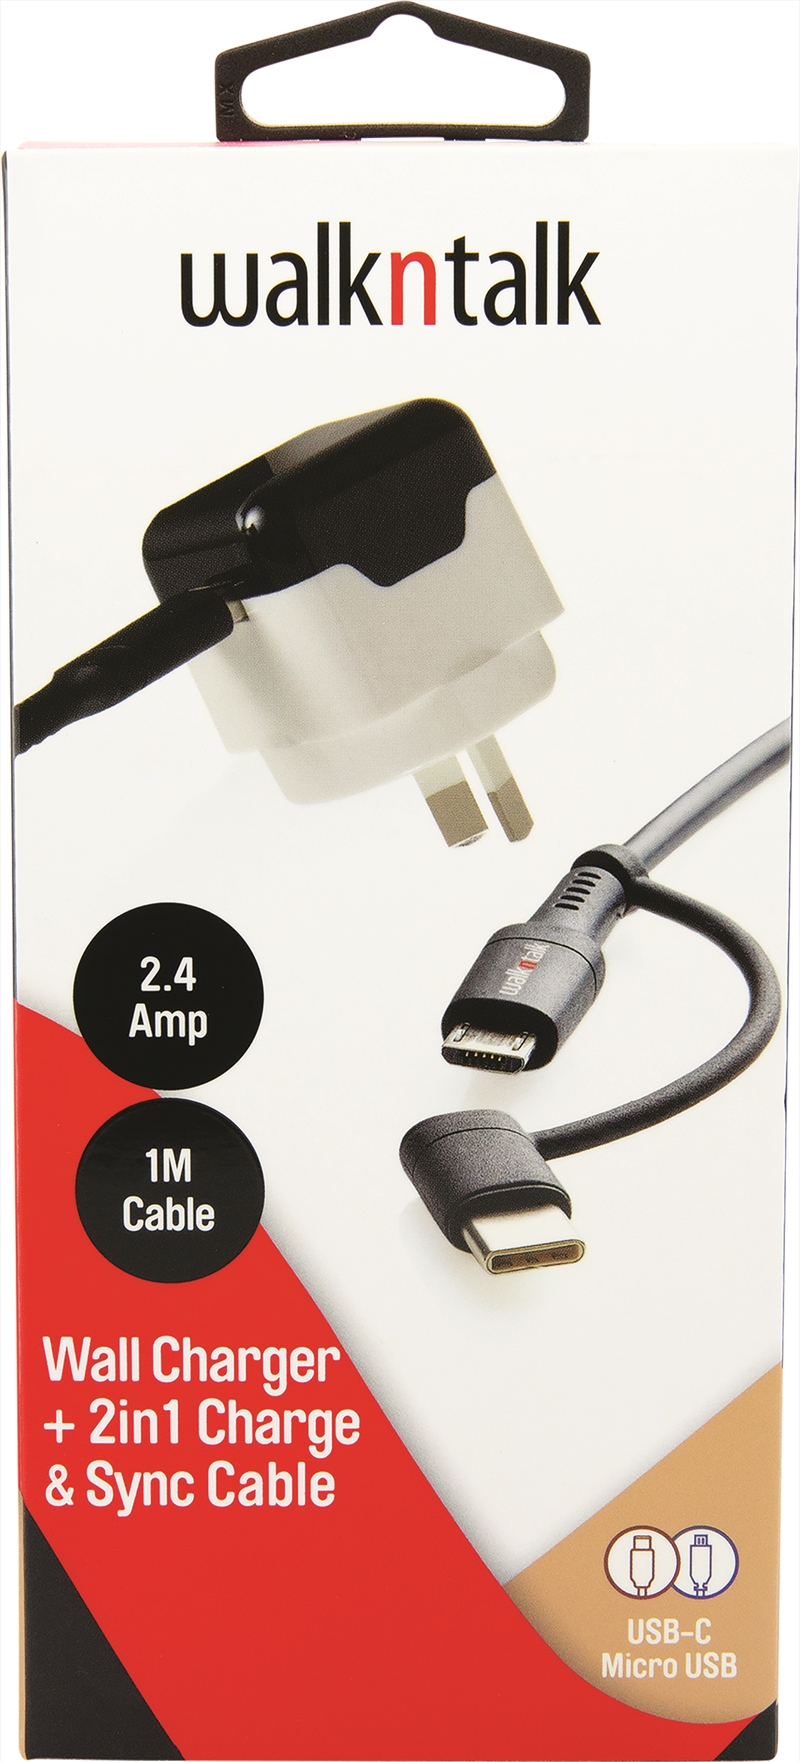 Wall Charger 2in1 Charge and Sync Cable | Accessories